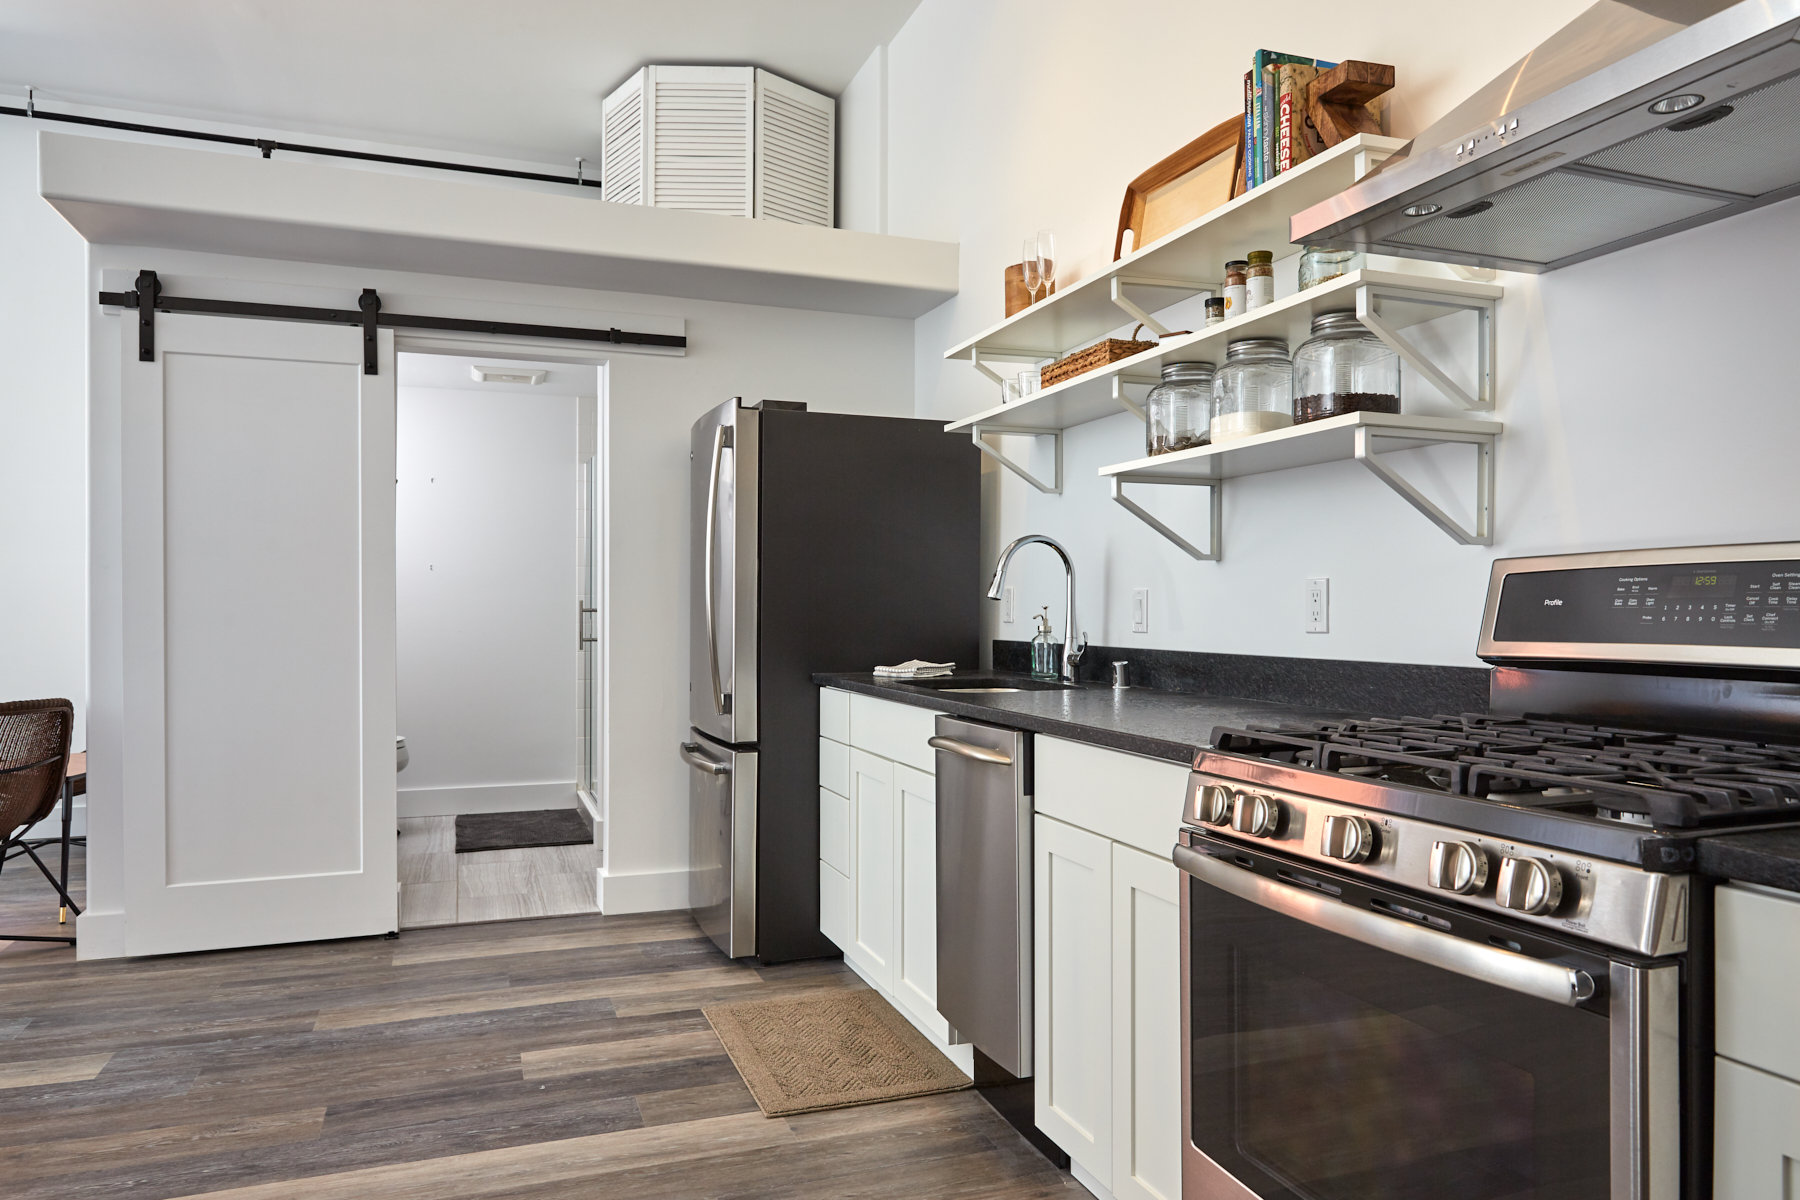 EastEndLofts_March2017-12.jpg